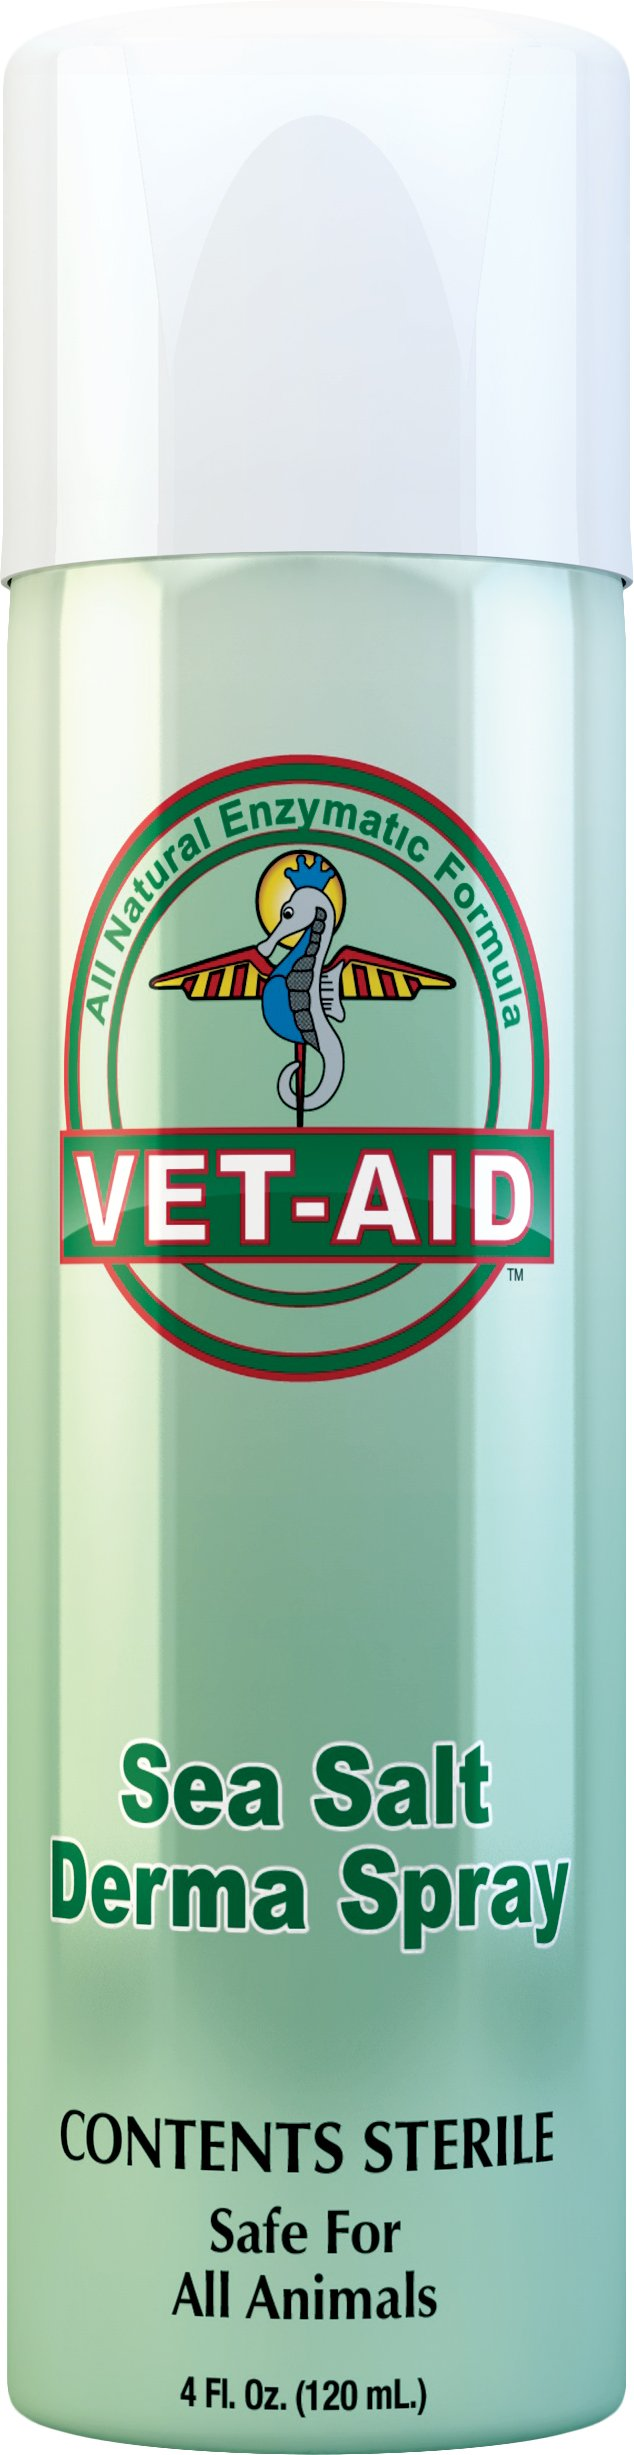 Vet Aid Sea Salt Wound Care Spray, 4-Ounce by Vet Aid